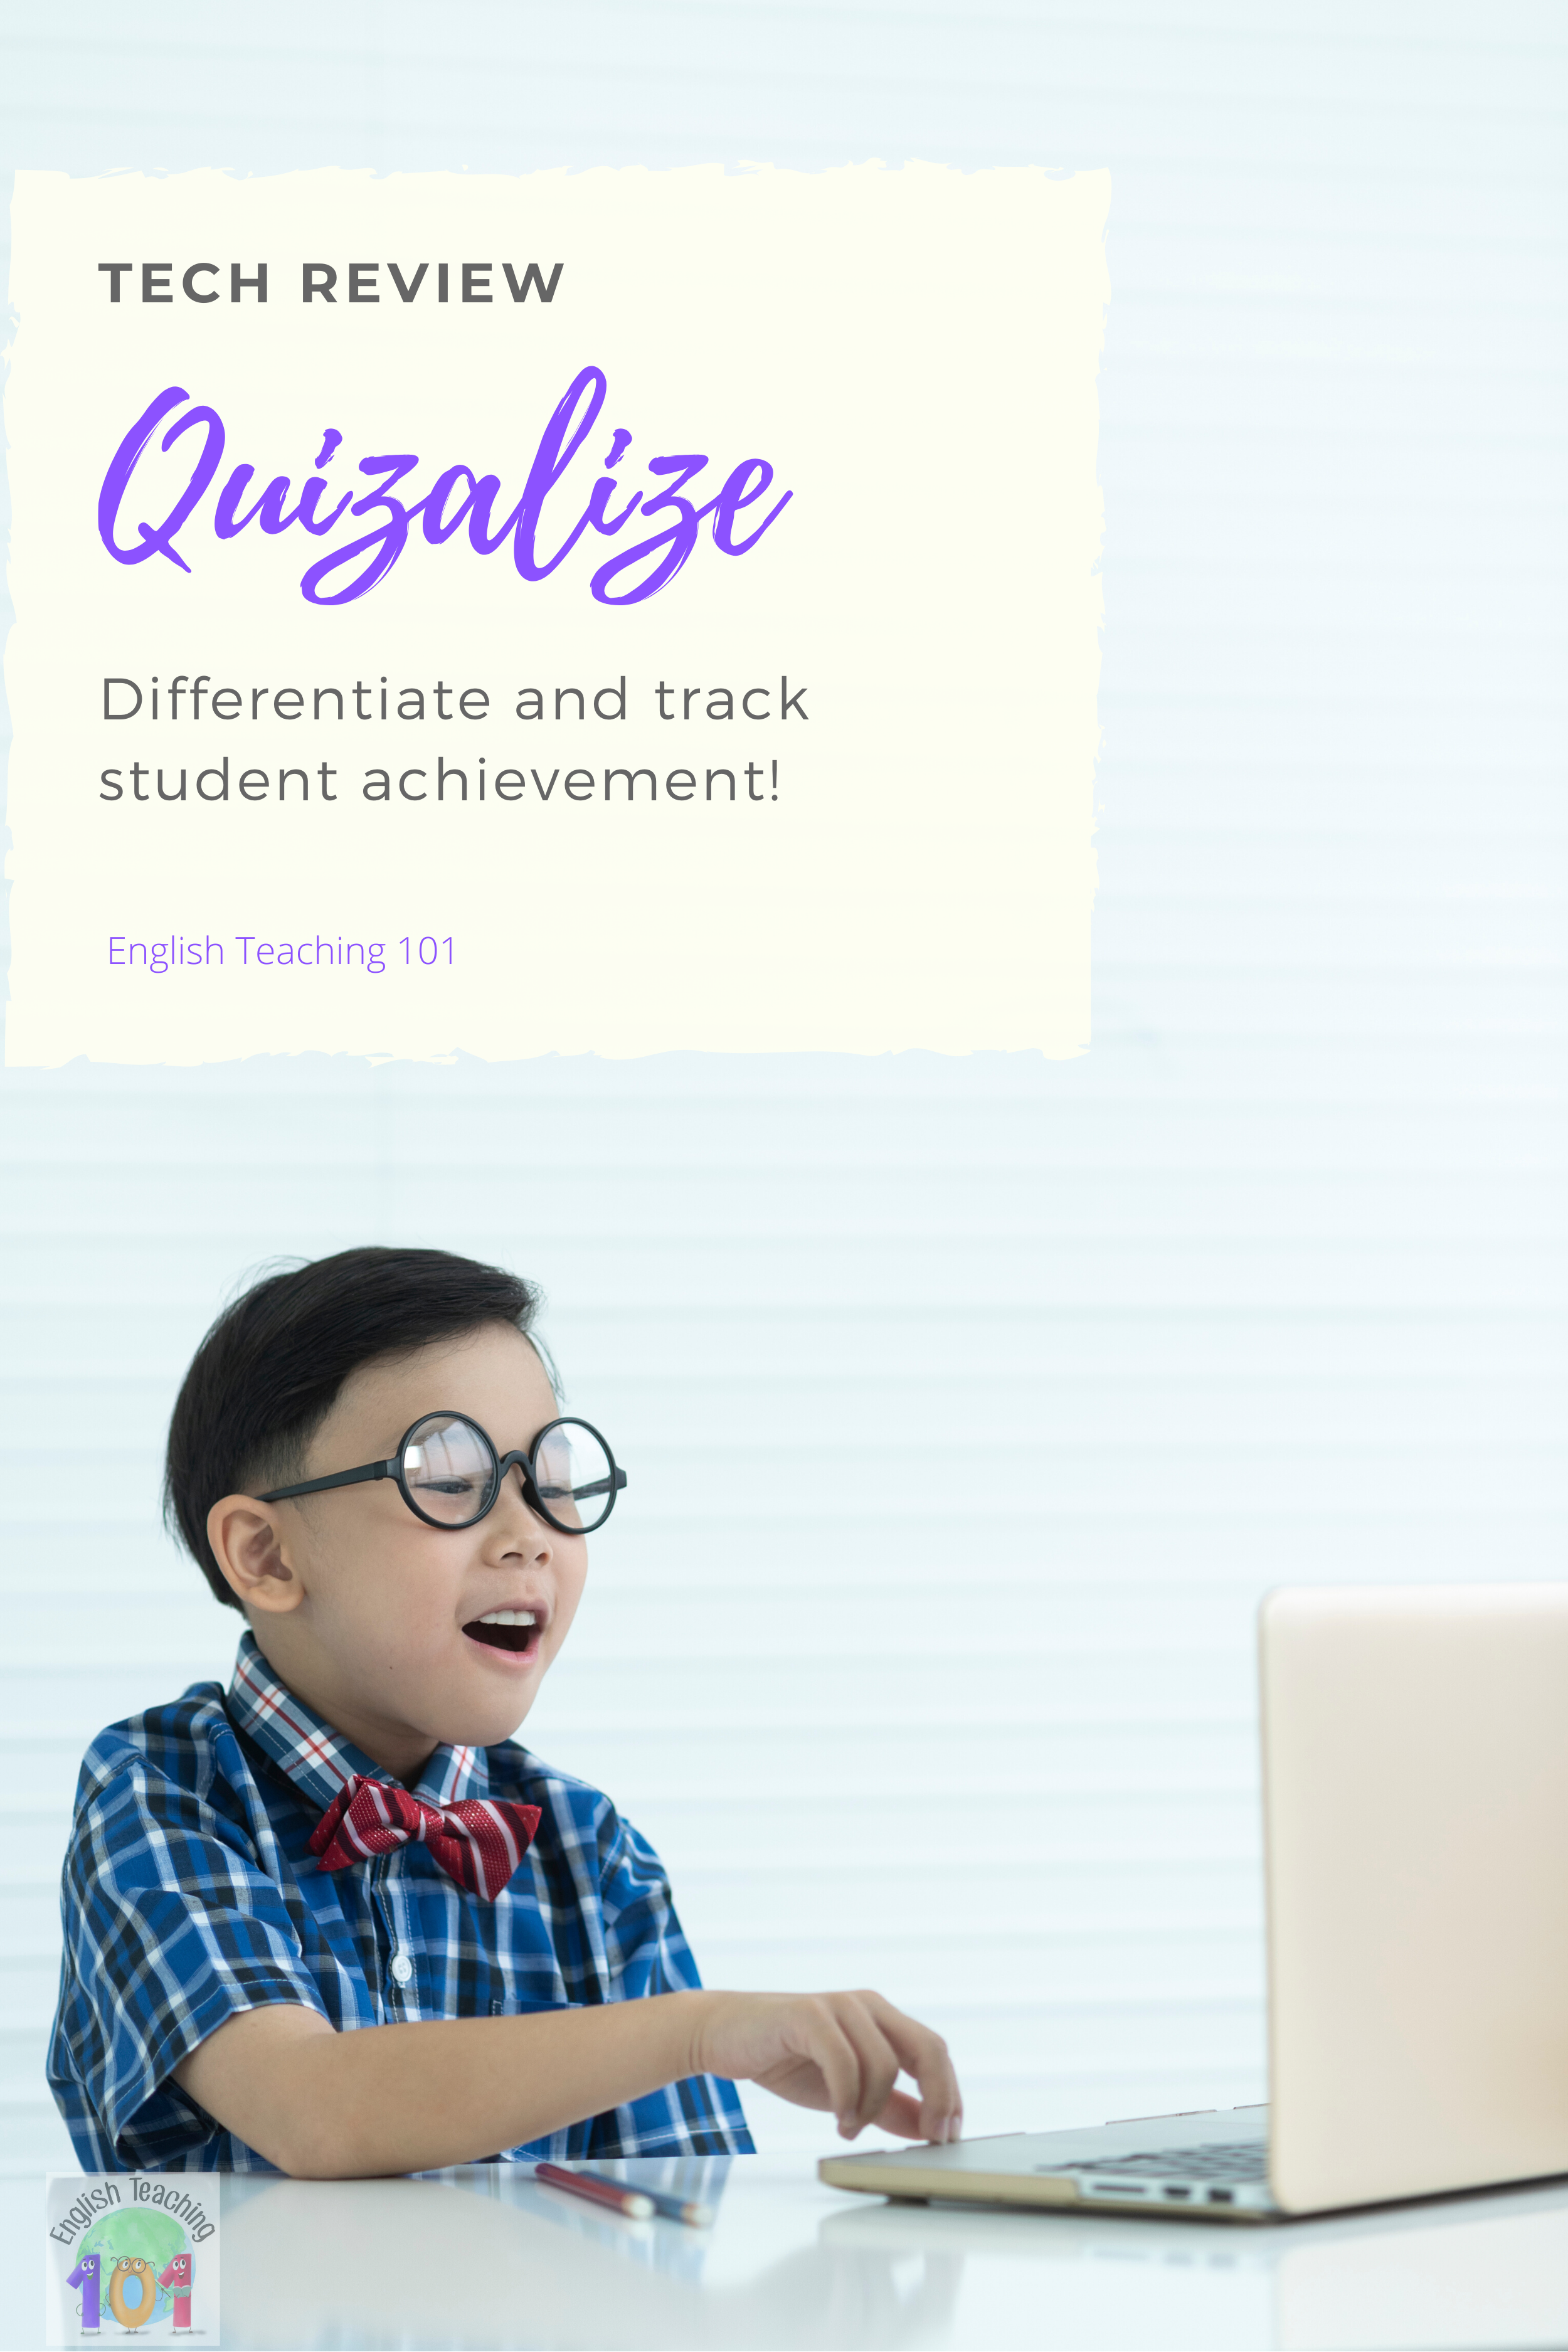 DIFFERENTIATE AND TRACK STUDENT ACHIEVEMENT WITH QUIZALIZE!